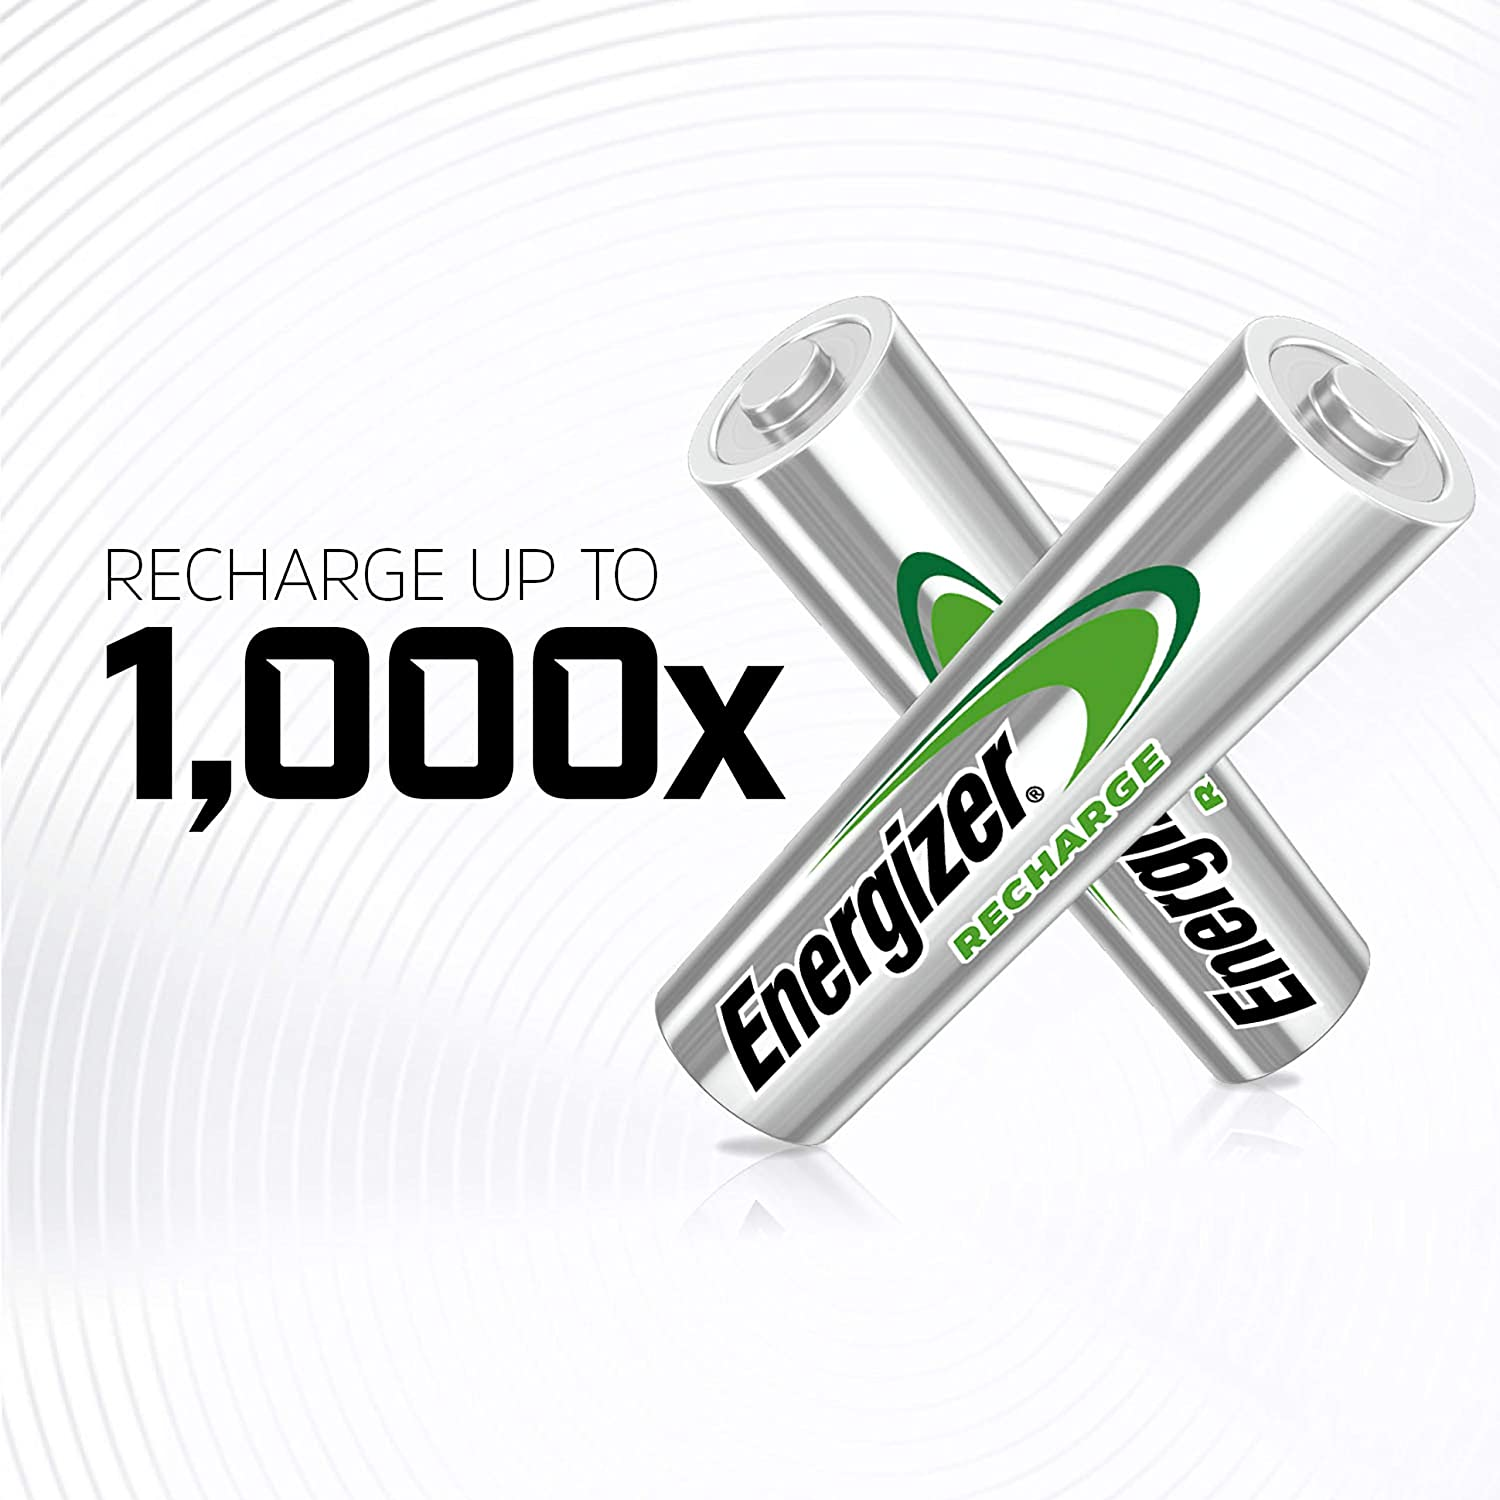 700 mAh NiMH Chargeable for 1,000 Cycles Pre-charged Energizer Rechargeable AAA Batteries Recharge Universal 8 Count